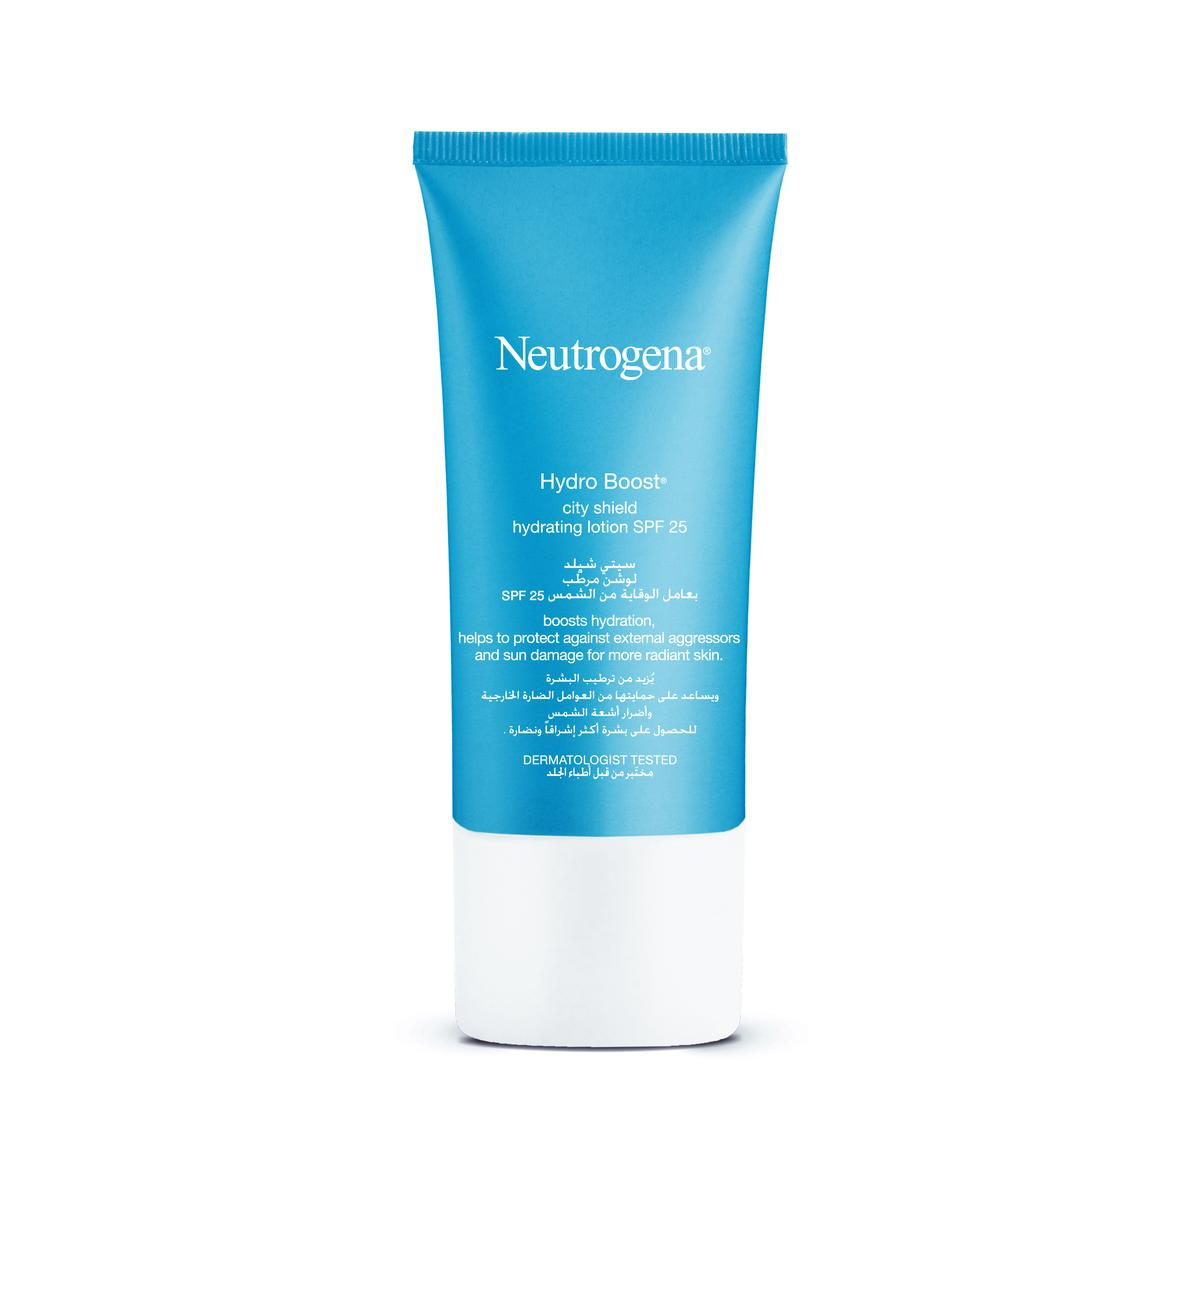 Neutrogena® Hydro Boost ® City Shield Hydrating Lotion SPF 25